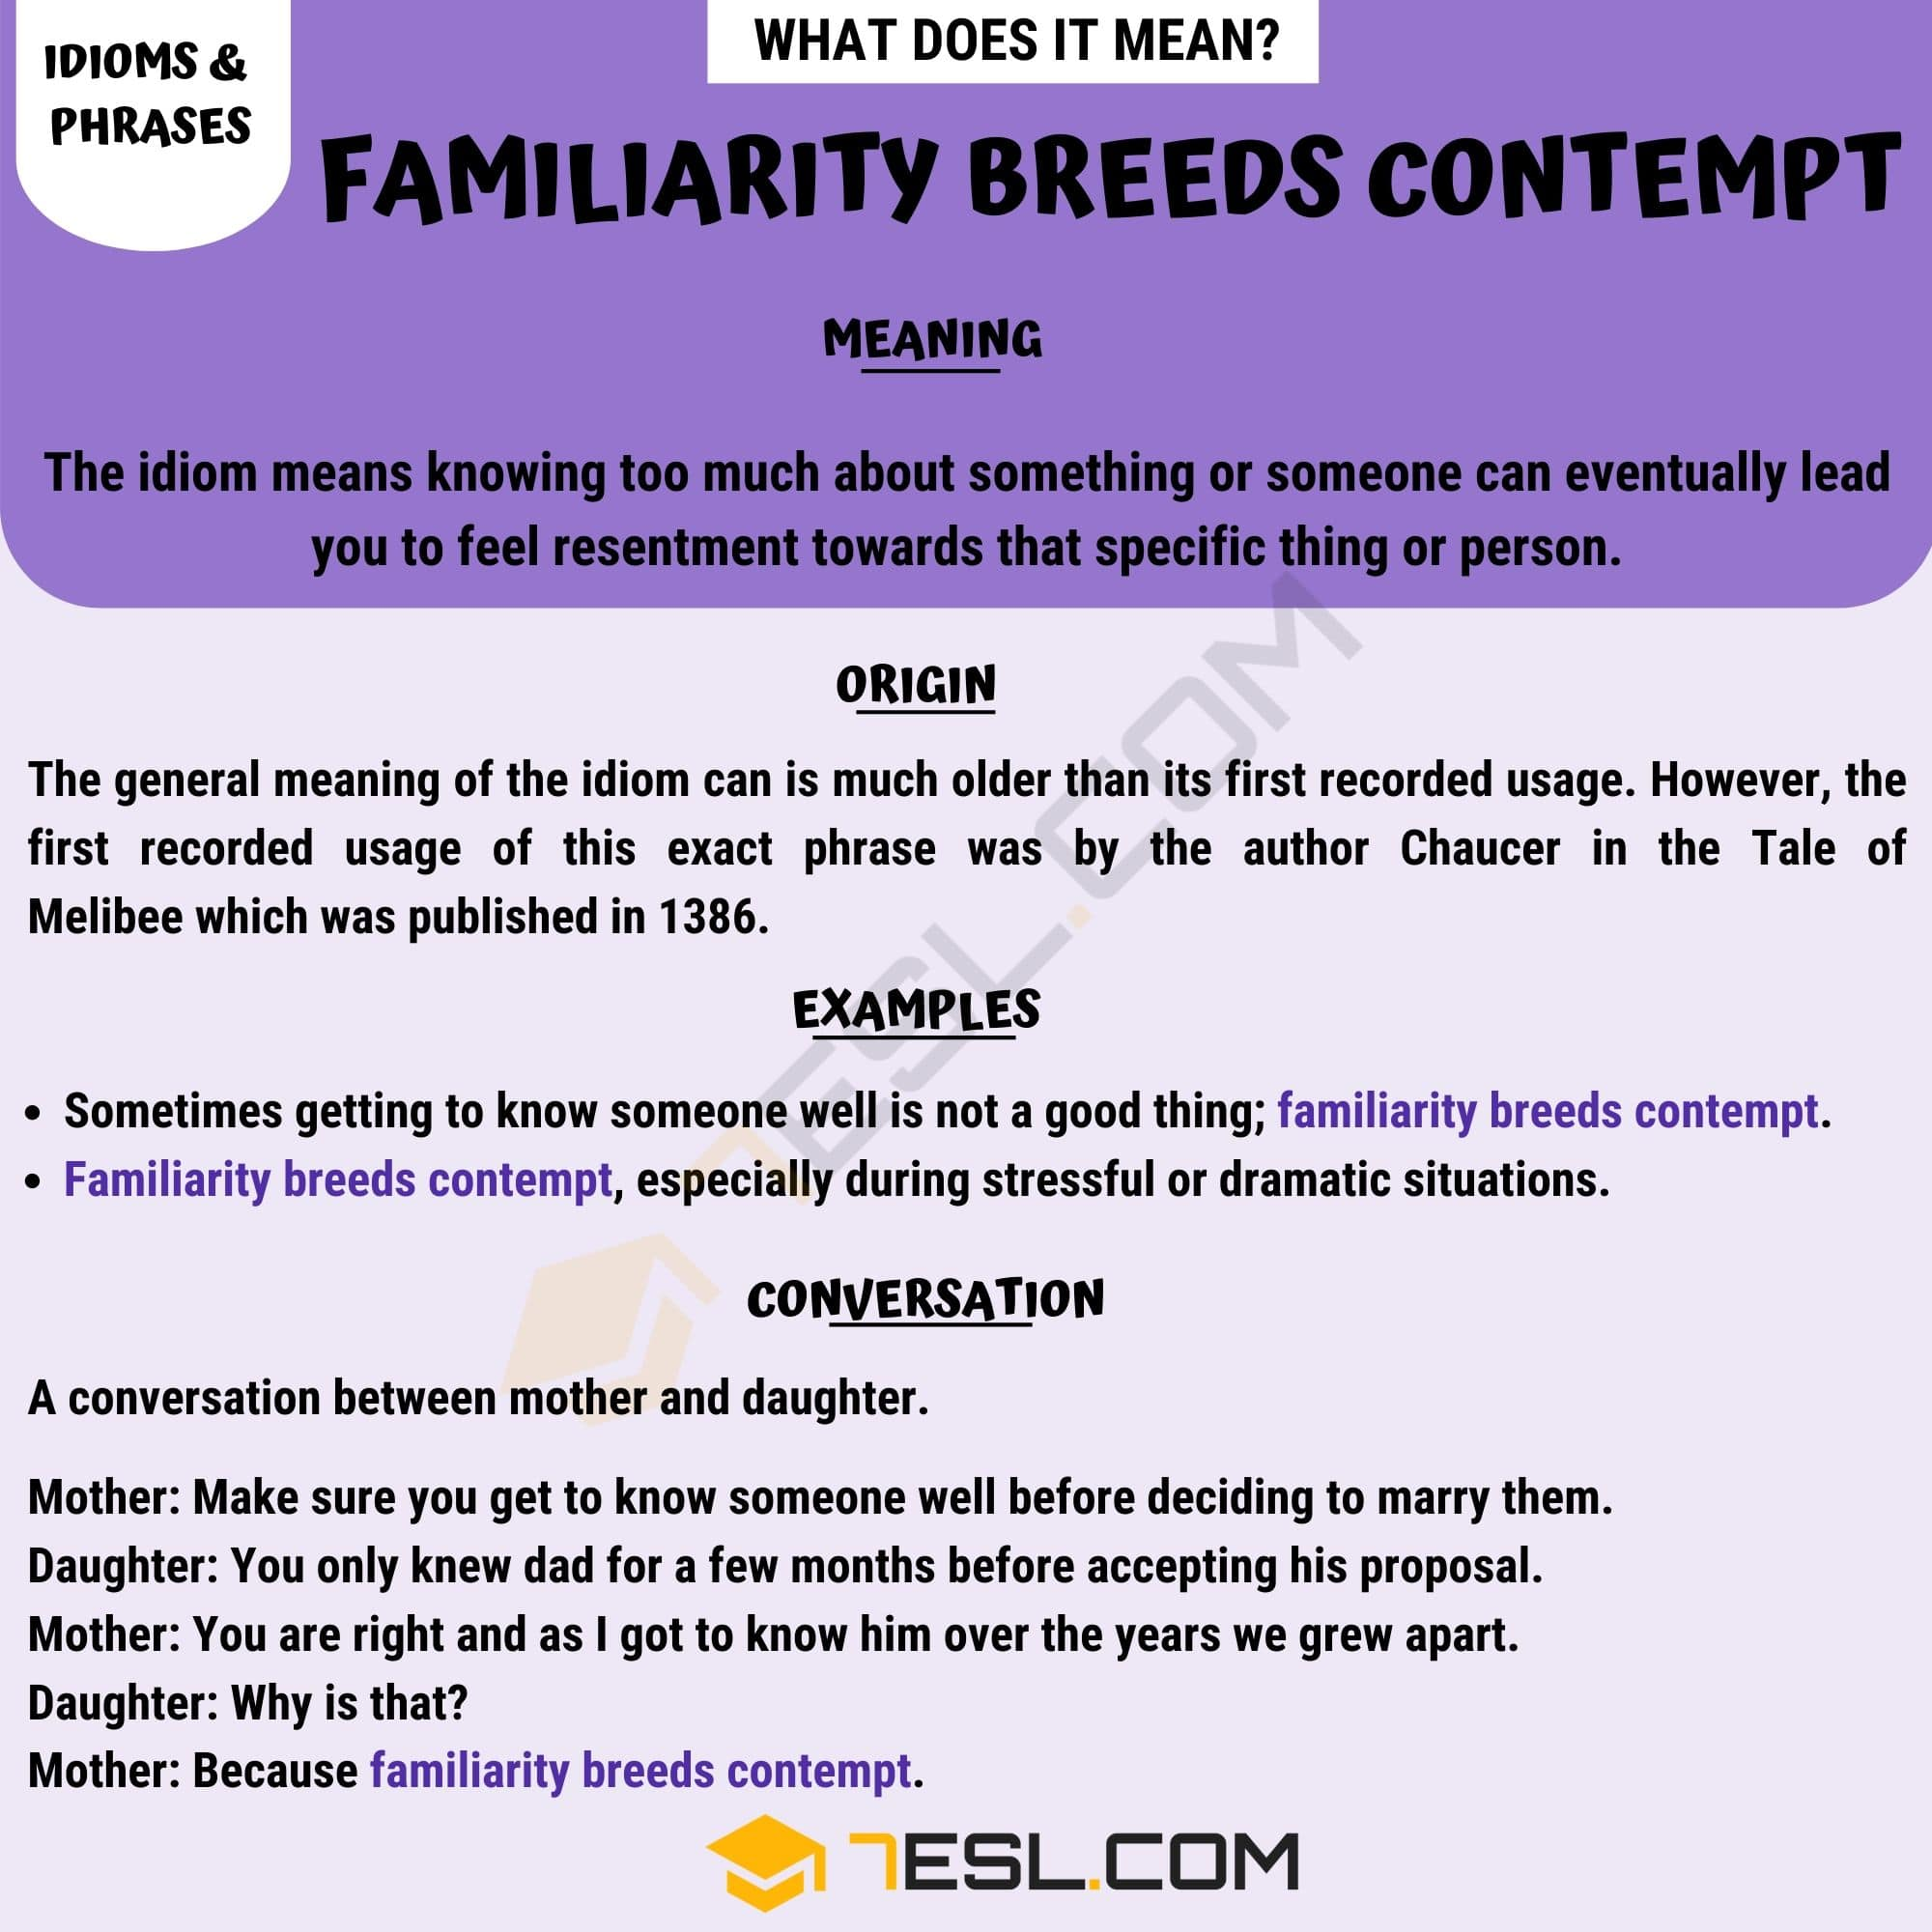 Familiarity Breeds Contempt